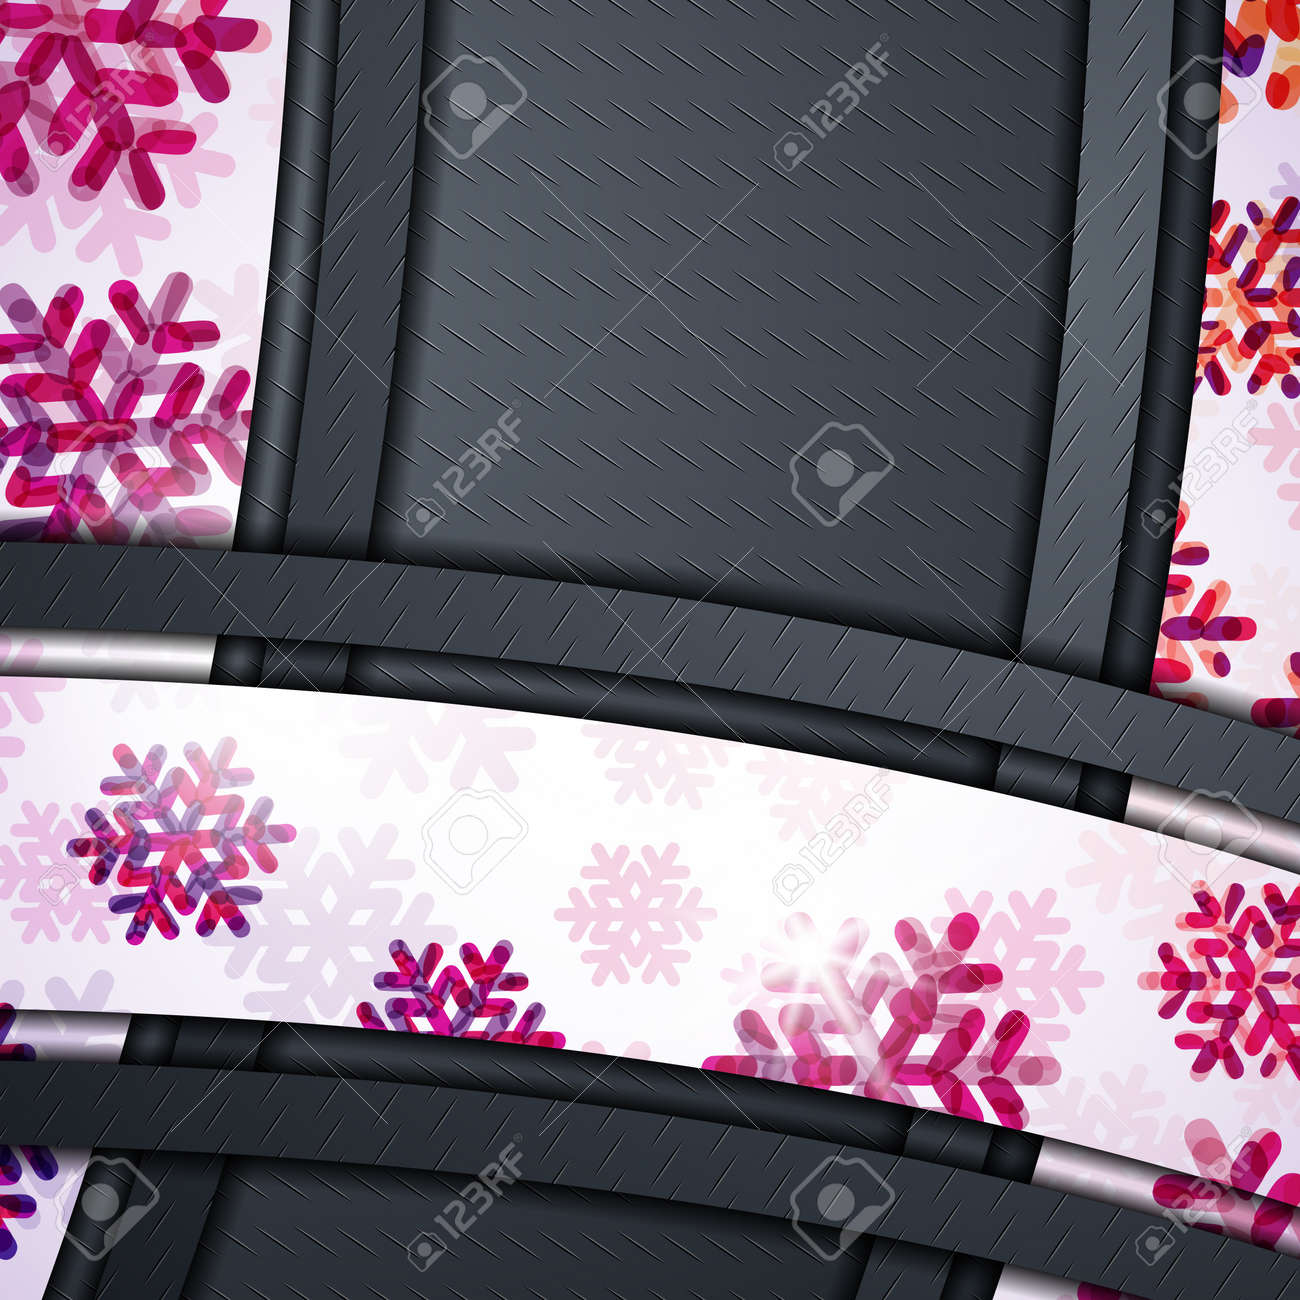 layered abstract background with snowflakes image Stock Vector - 17600405